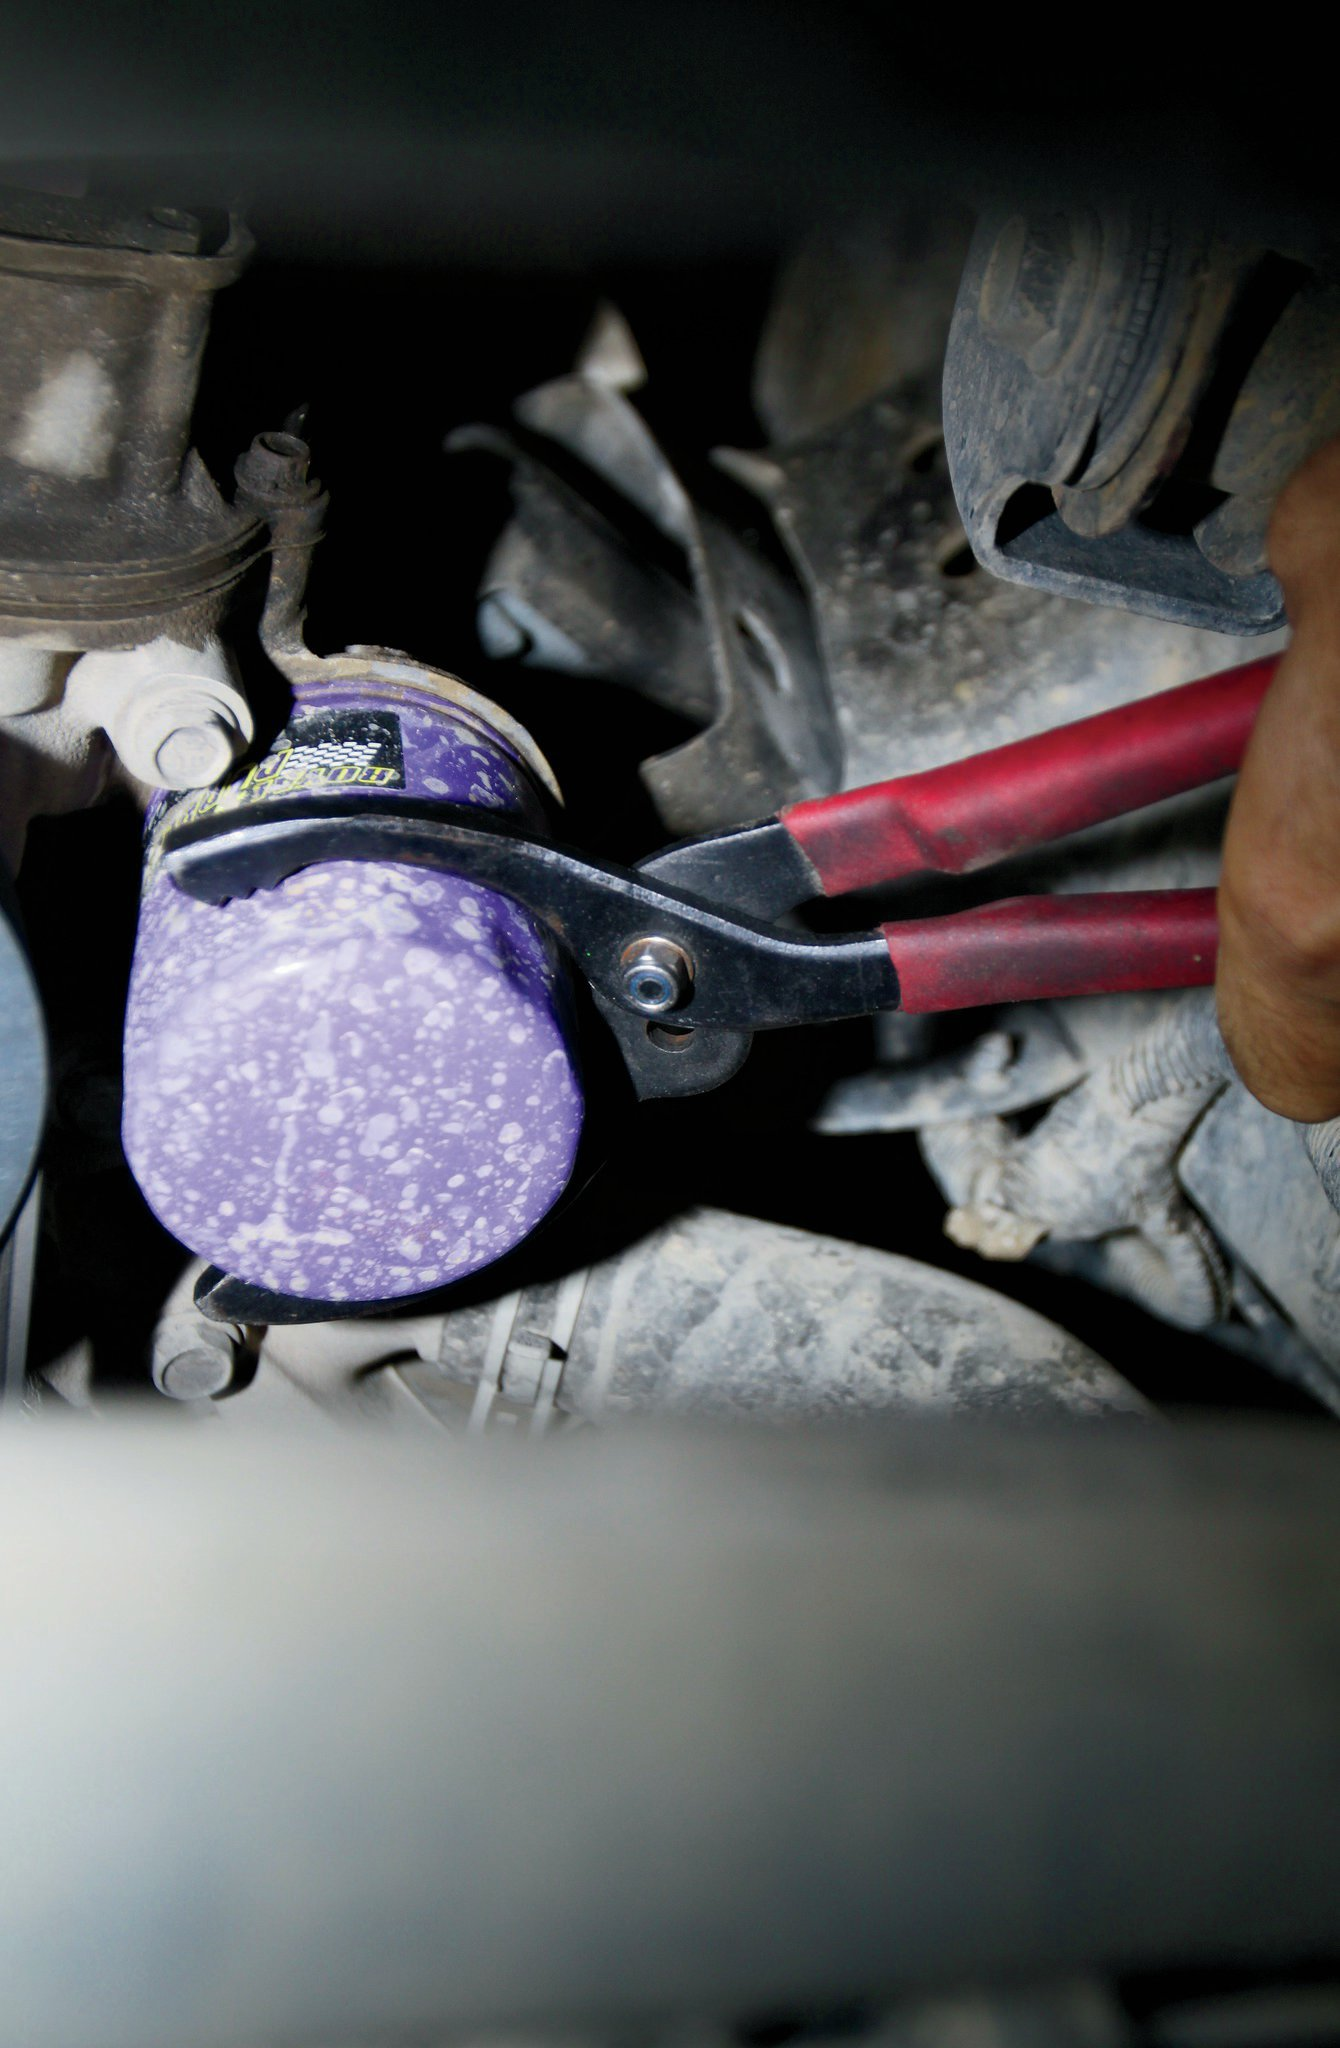 Remove the old oil filter using a small filter wrench, if necessary, and replace with the new filter. You should always lubricate the gasket on the new filter with a small amount of engine oil, as well as put some fresh oil in the filter. Due to the JK's horizontal oil filter, take care to not over fill it; otherwise, you may be taking a bath sooner than you planned. Never use a wrench or any other tool to tighten the new filter. Hand tighten only!